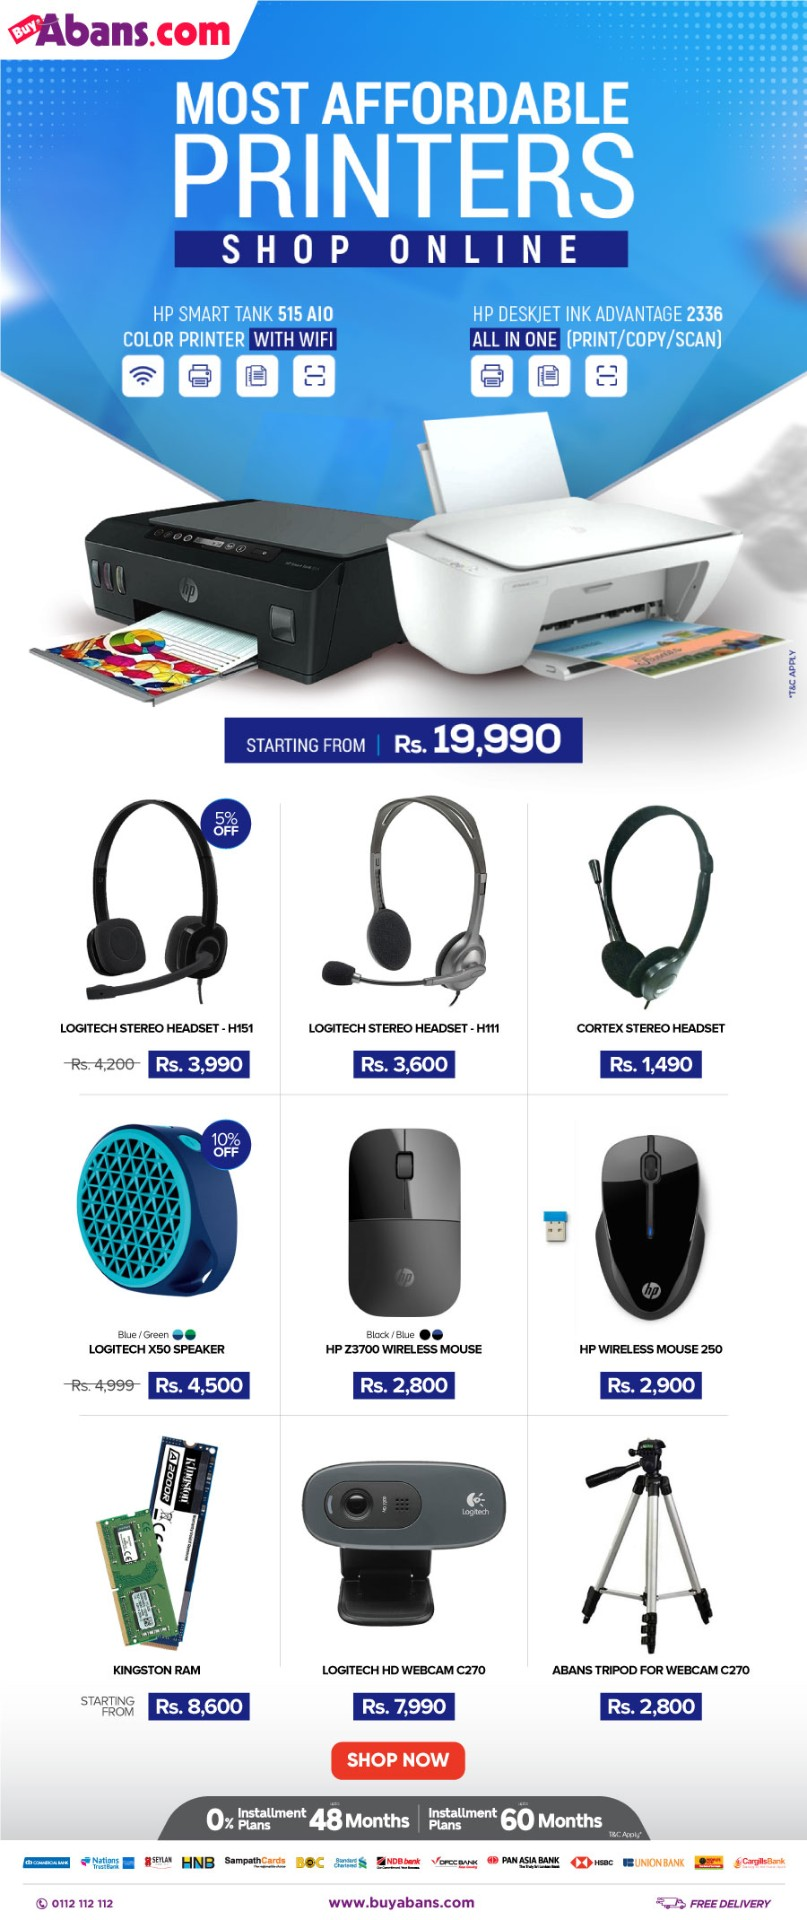 Affordable Printers & PC Accessories! Buy online at BuyAbans.com